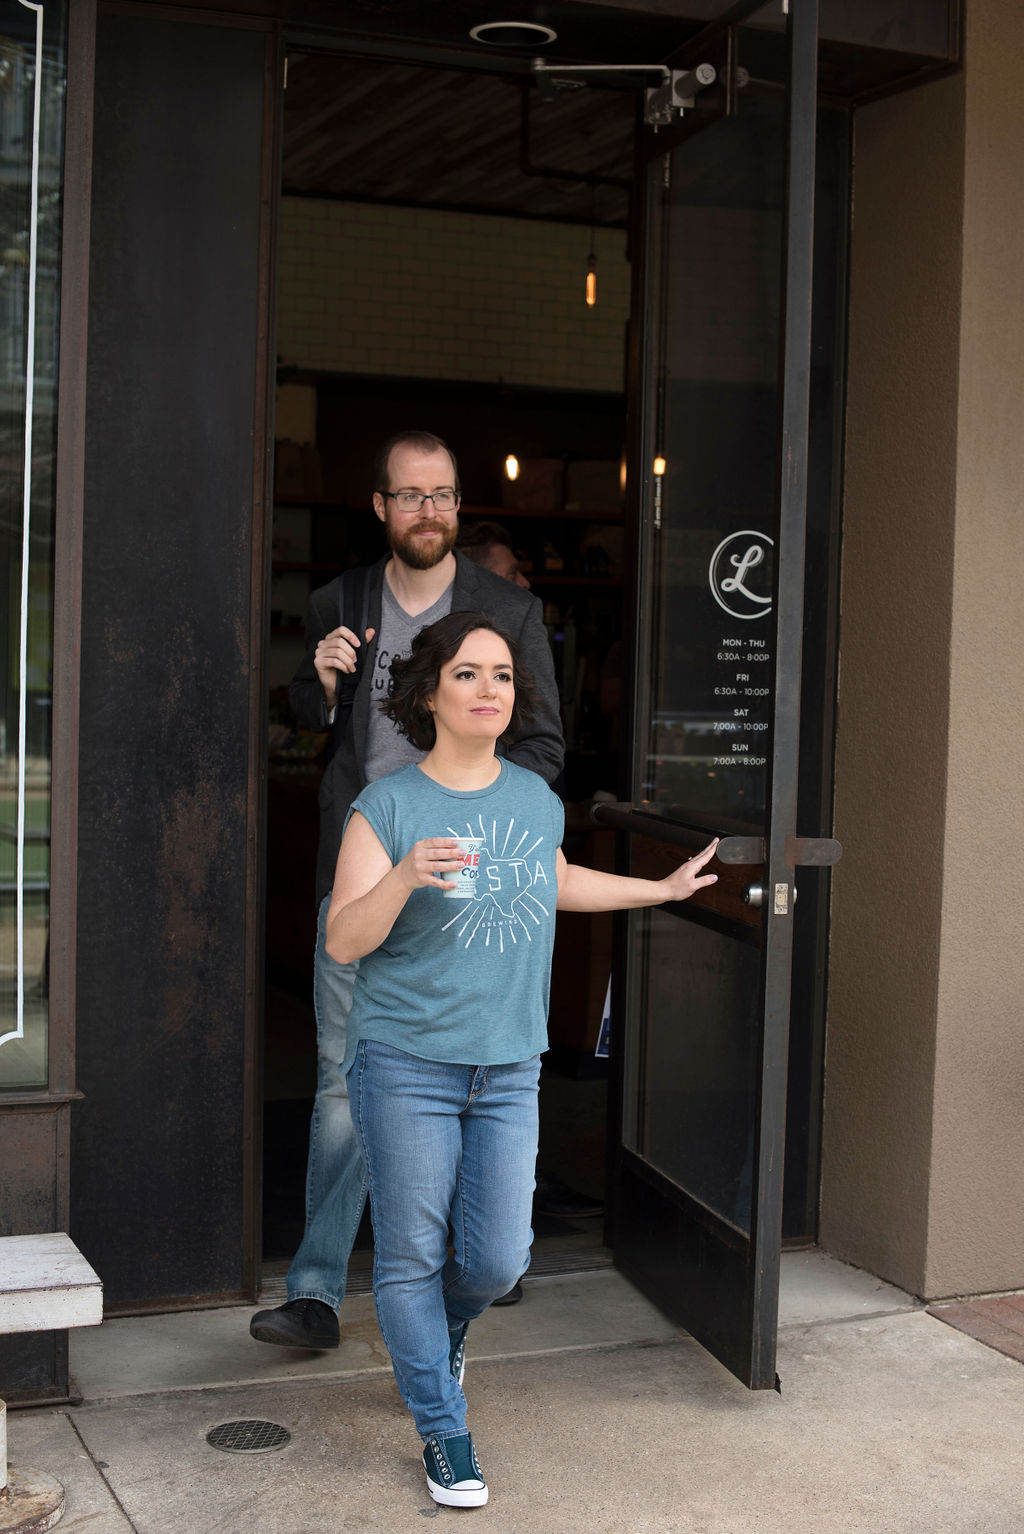 Megan and Travis exit a coffee shop at the same time